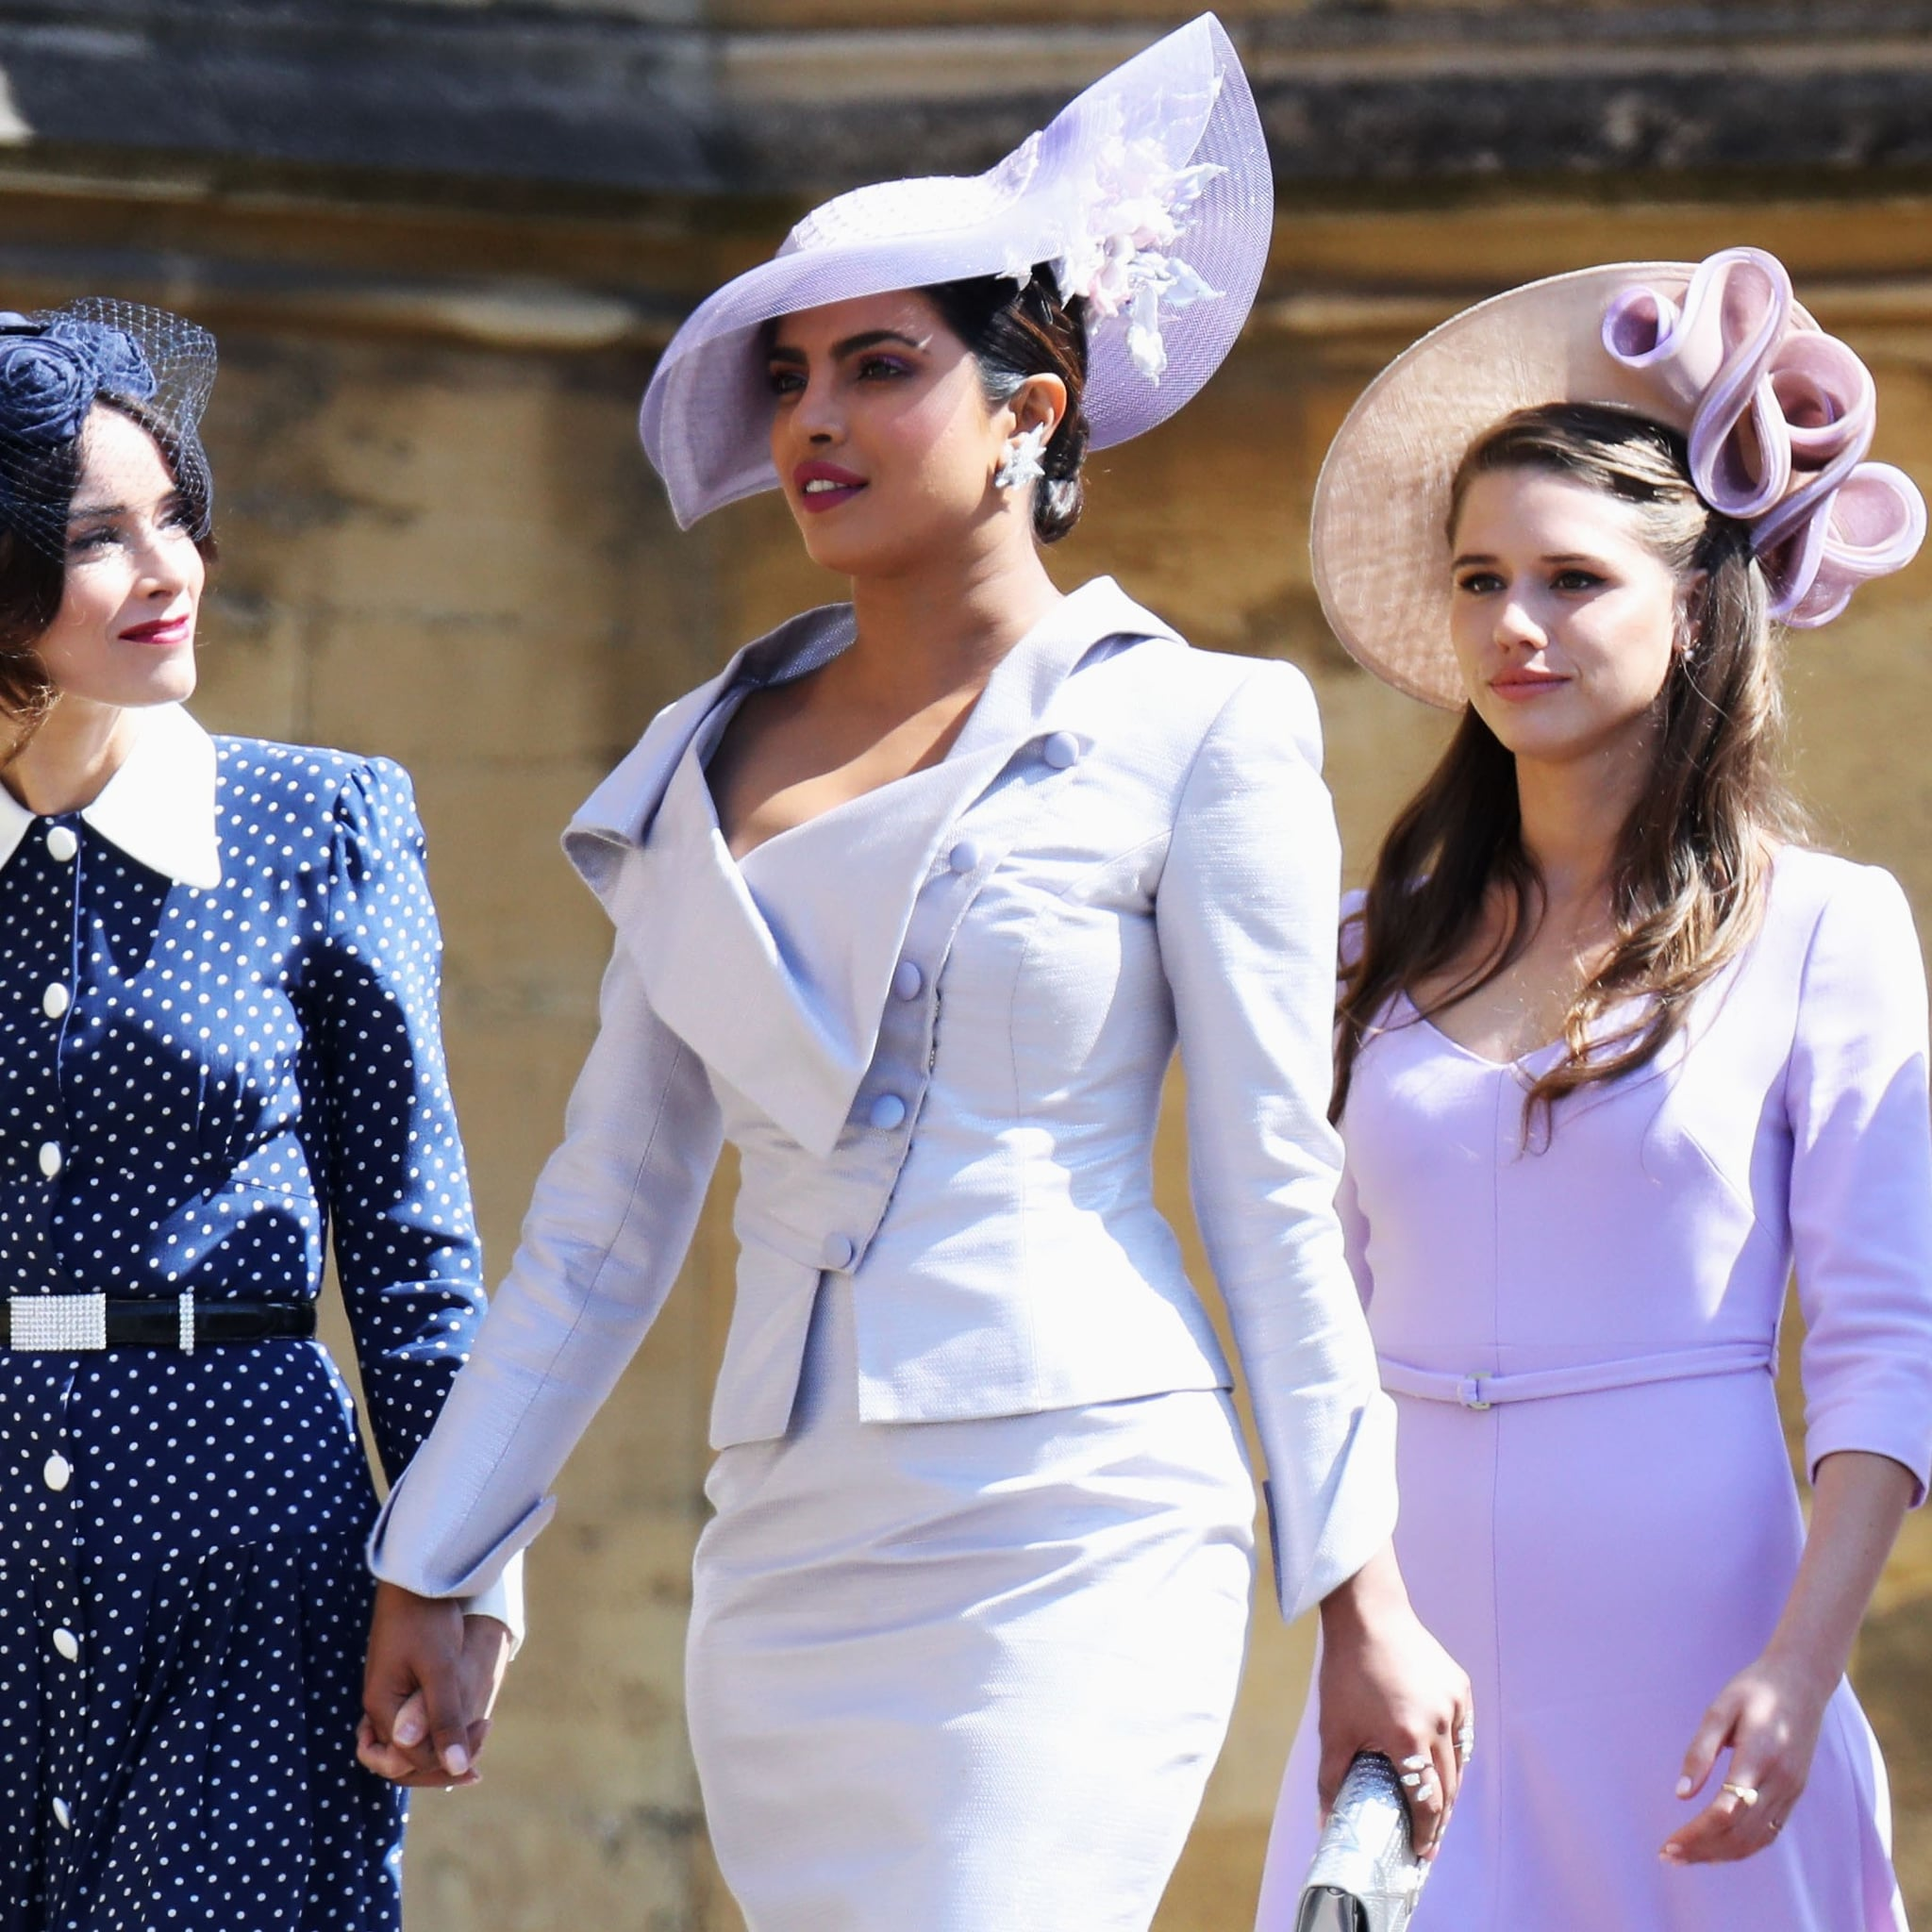 d209769b9fd00 Priyanka Chopra Outfit at the Royal Wedding 2018